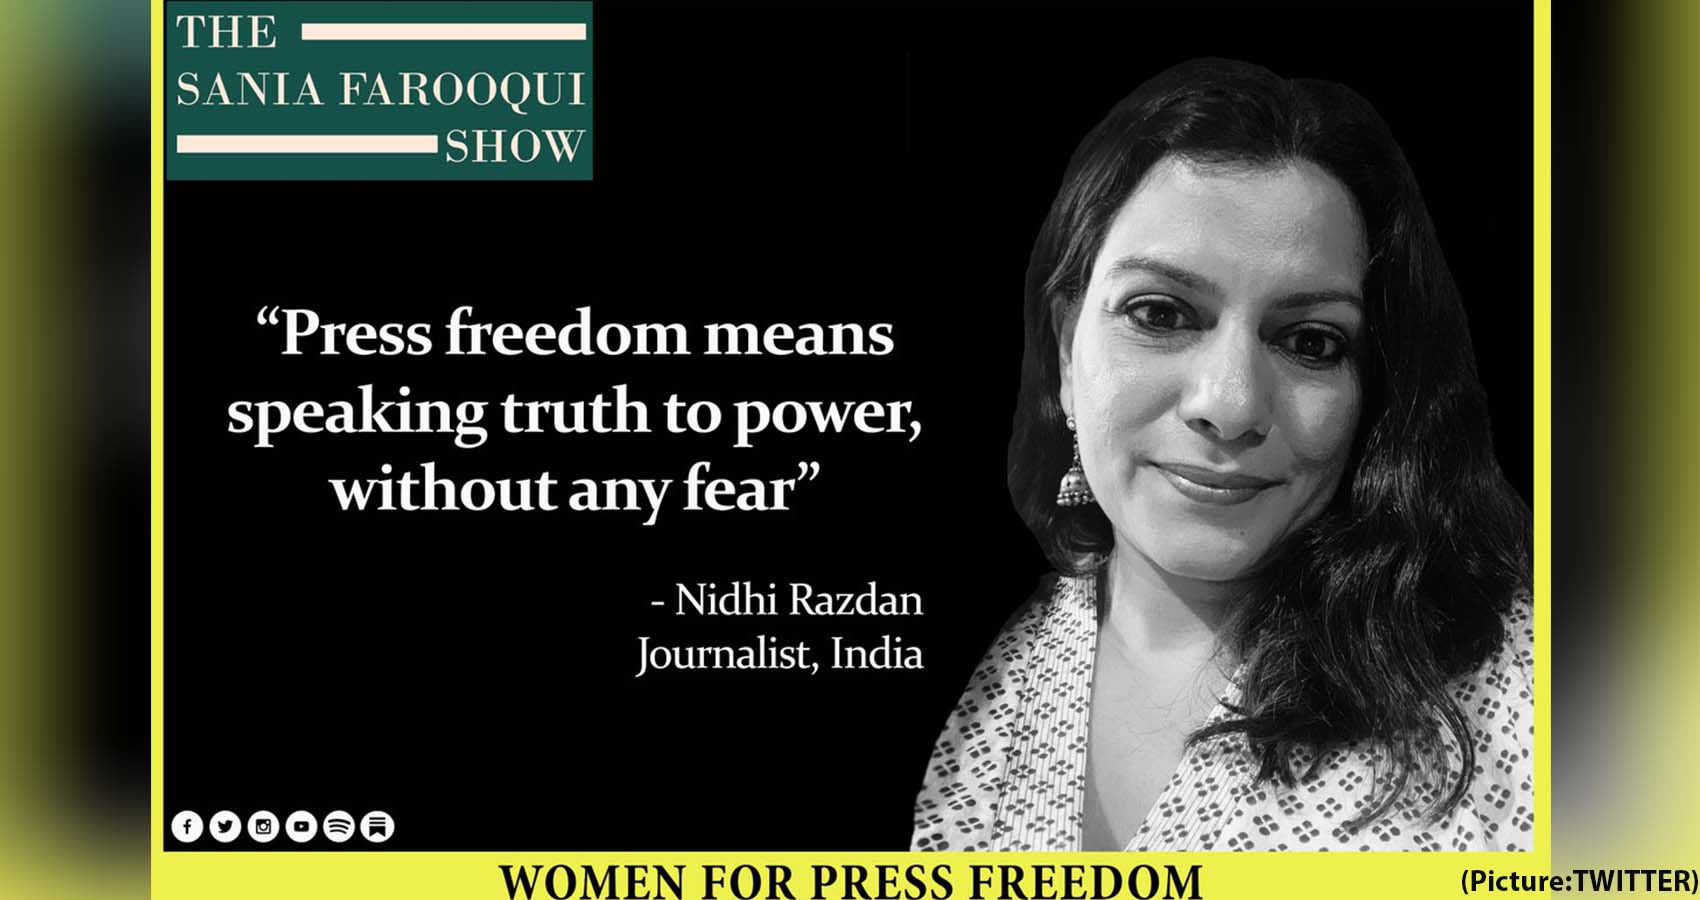 'Proud Of Being Able To Speak The Truth:' Journalist Nidhi Razdan On Her Cyber Attack